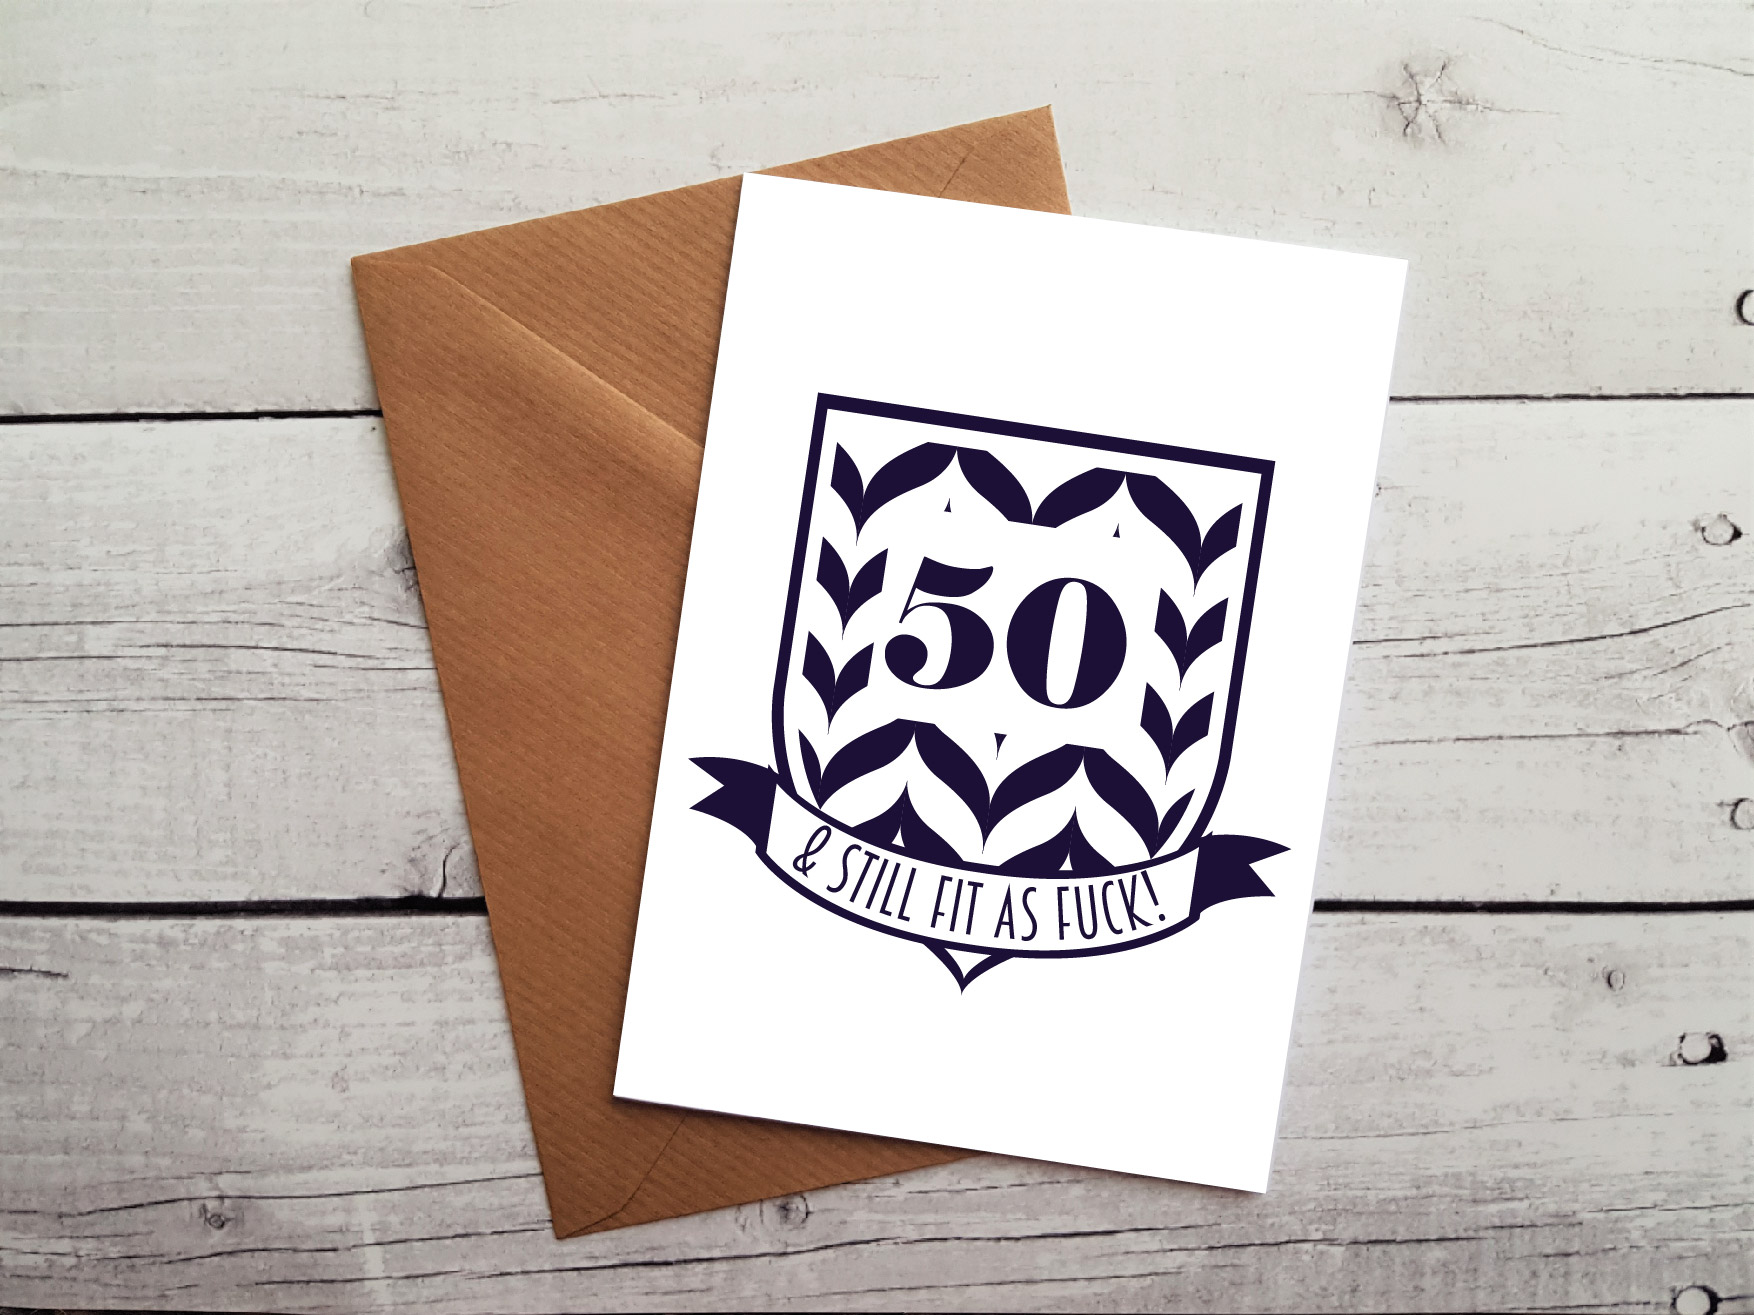 Hilarious 50th Birthday Card By Beautifully Obscene